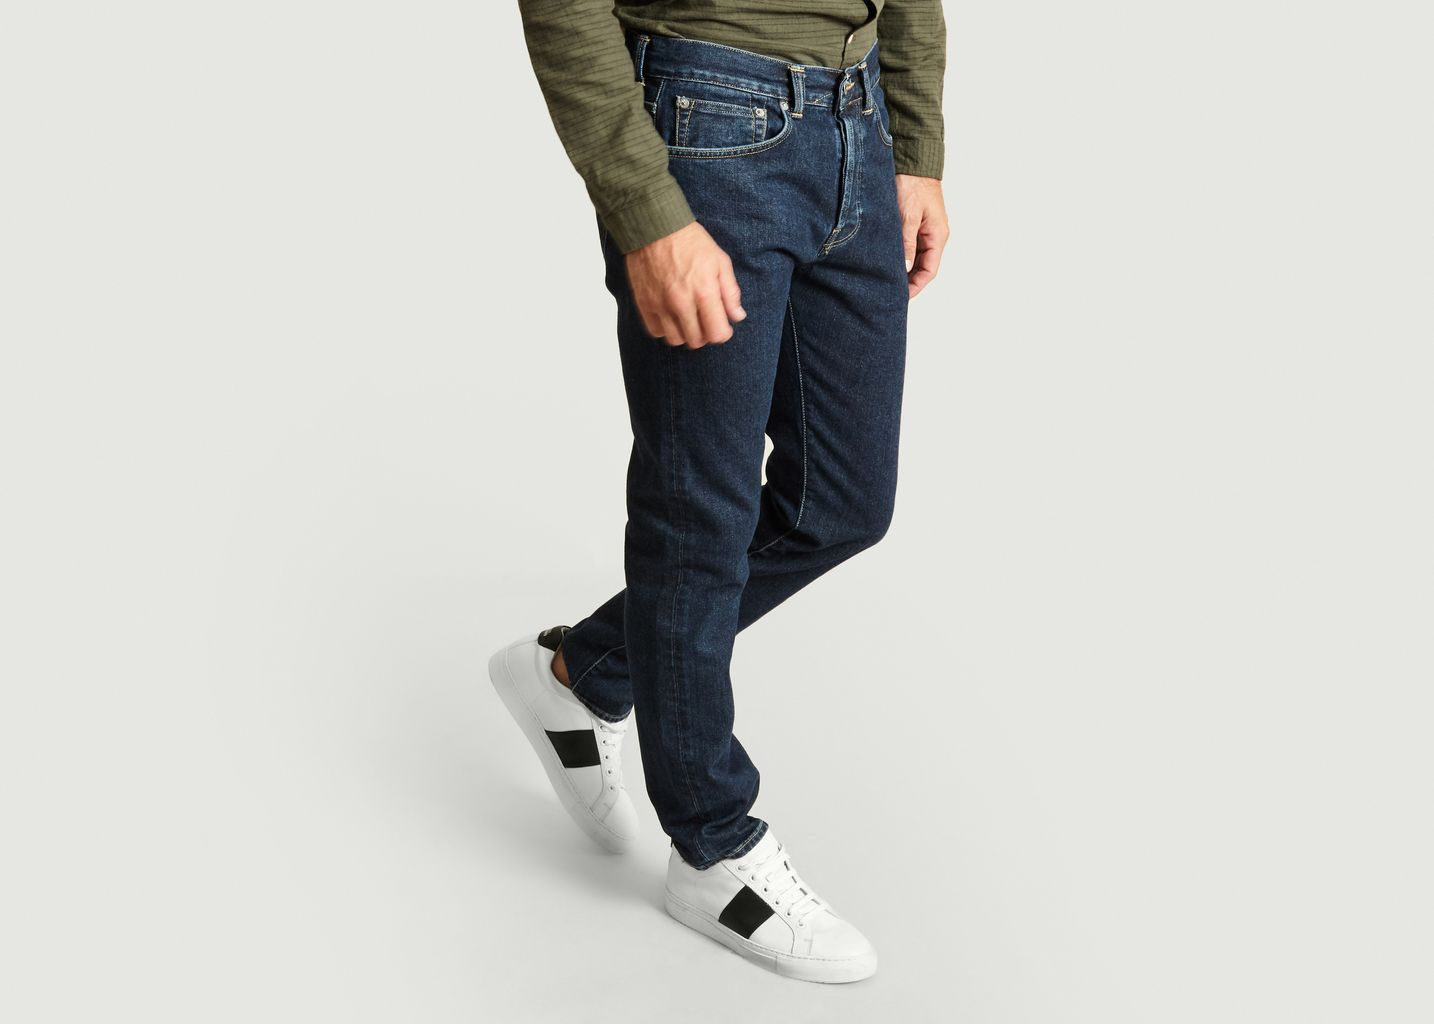 ED-80 Slim Tapered Jeans - Edwin